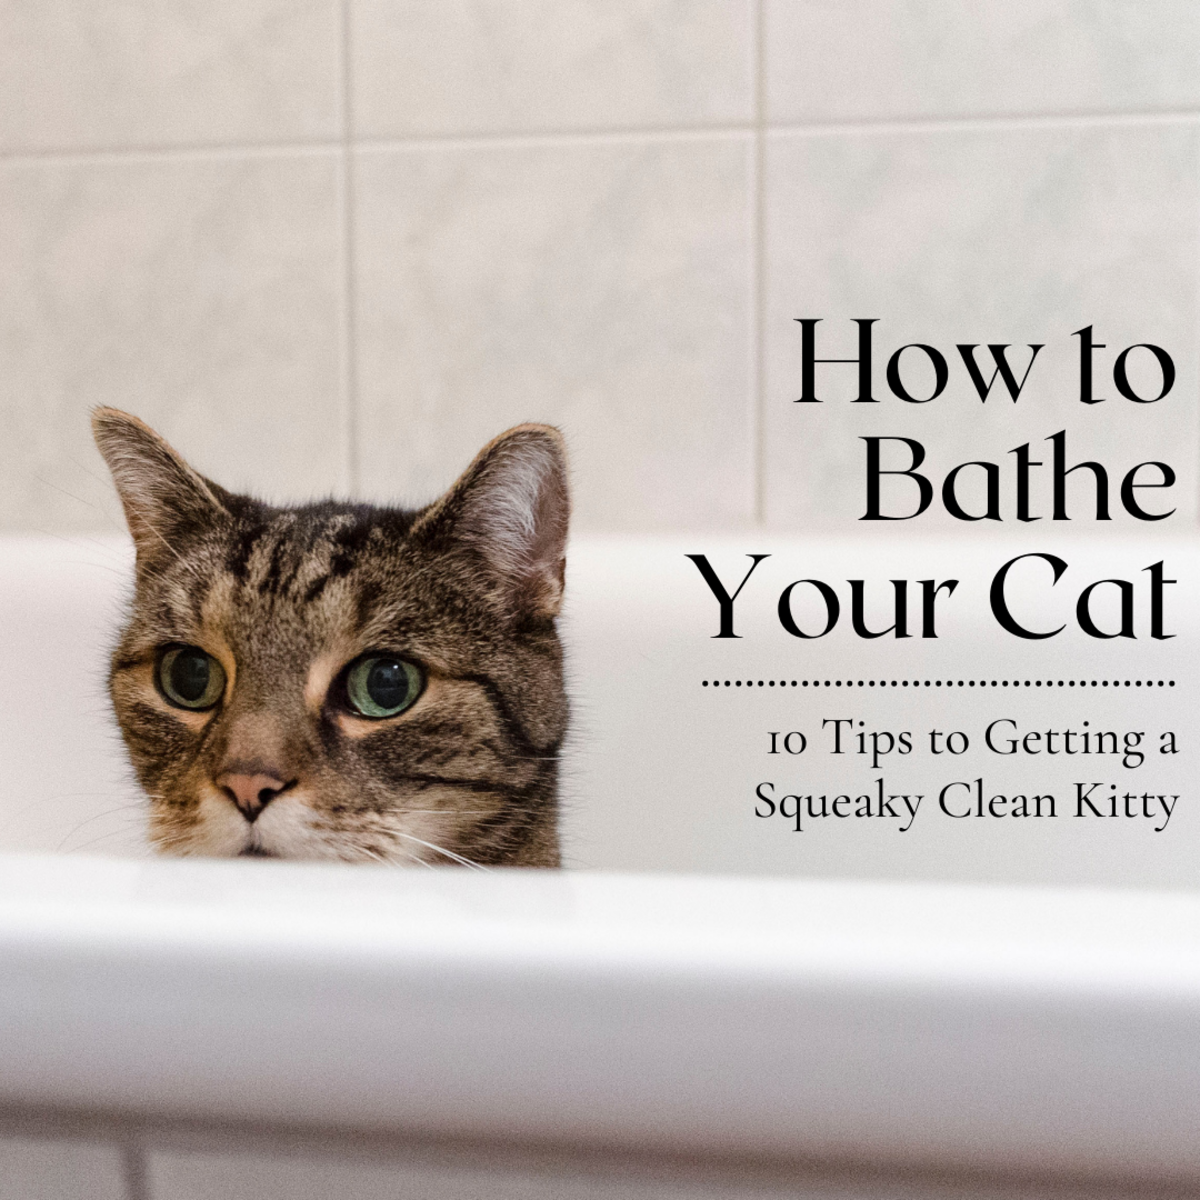 This guide will provide 10 tips to help you successfully (and safely!) bathe your feline friend.